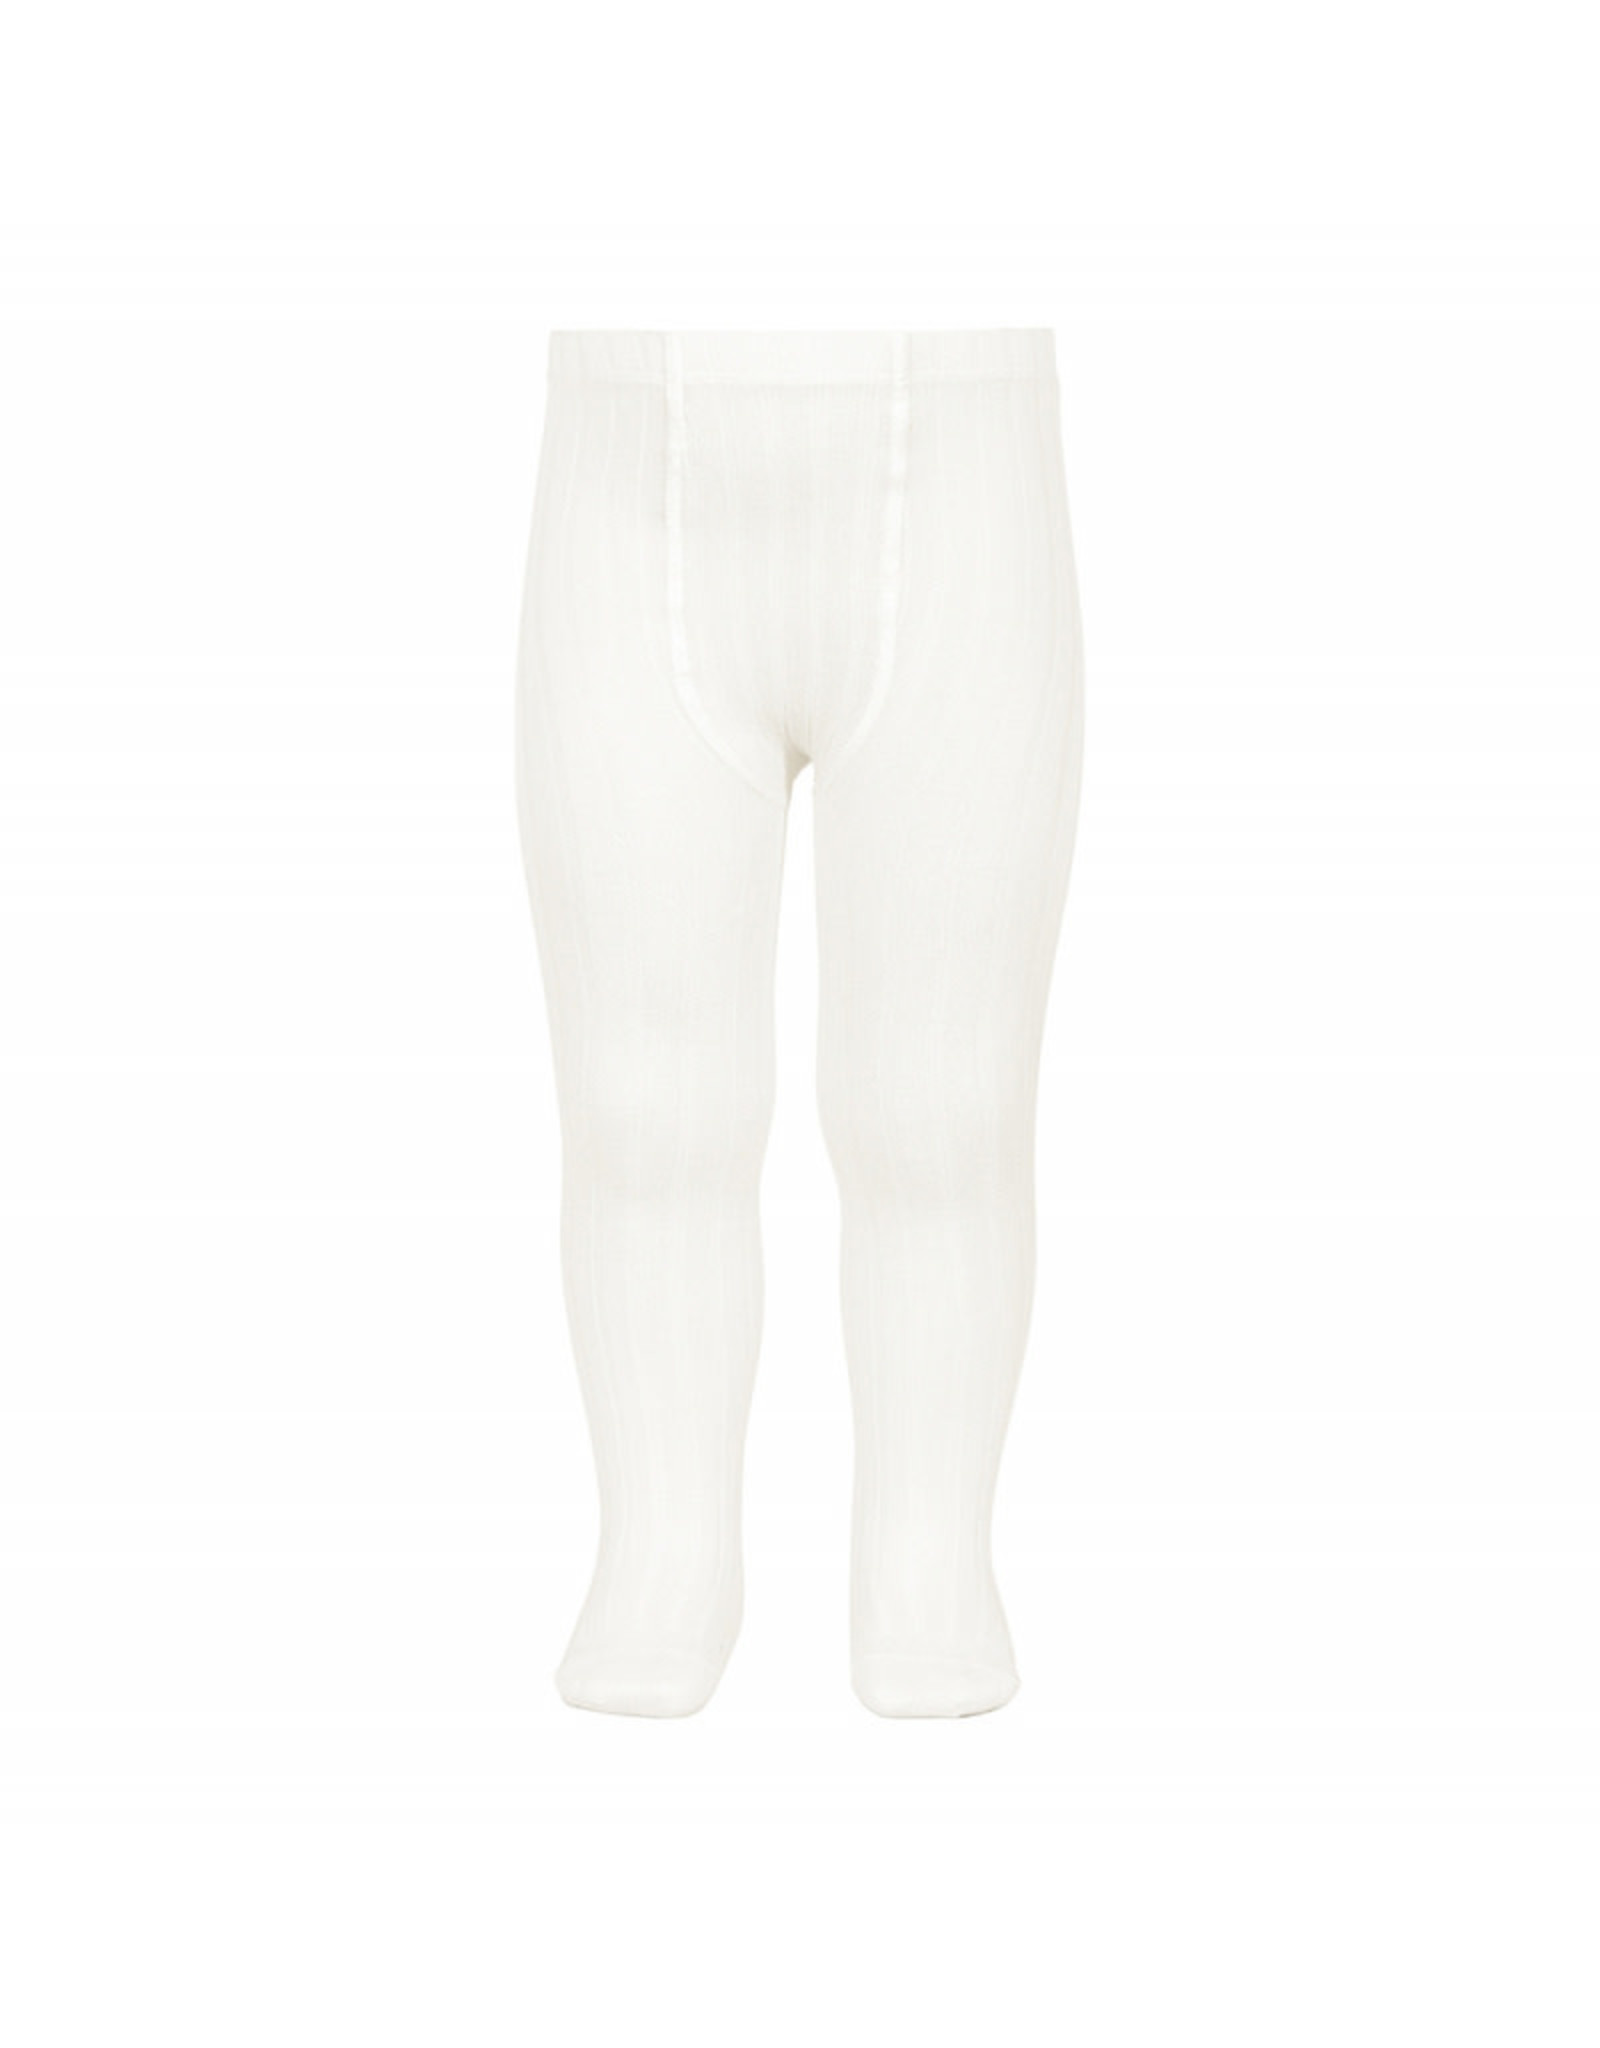 CONDOR Cream Ribbed Tights